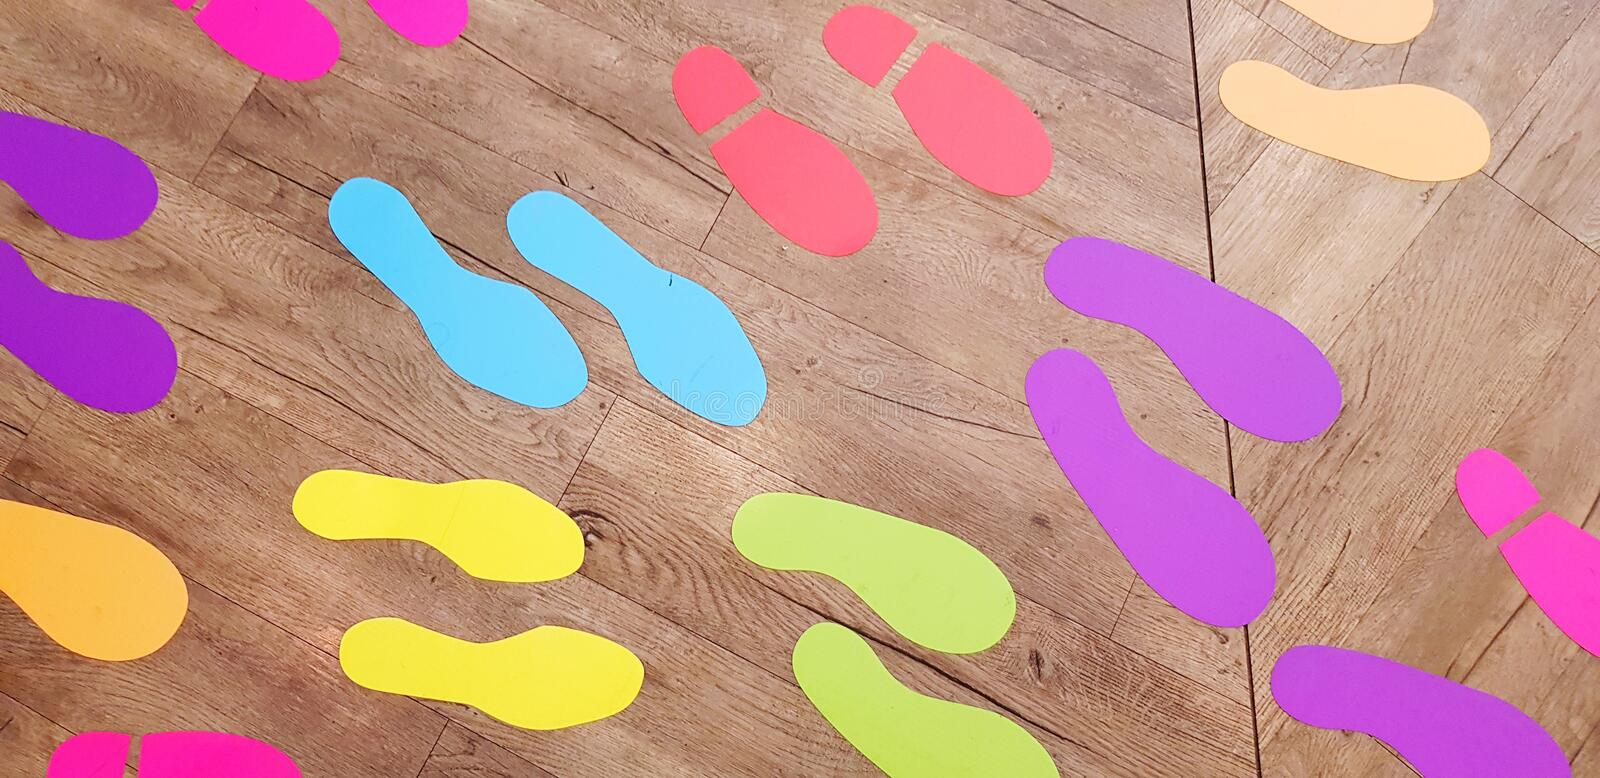 Many colorful footprint sticker on the wooden floor stock images